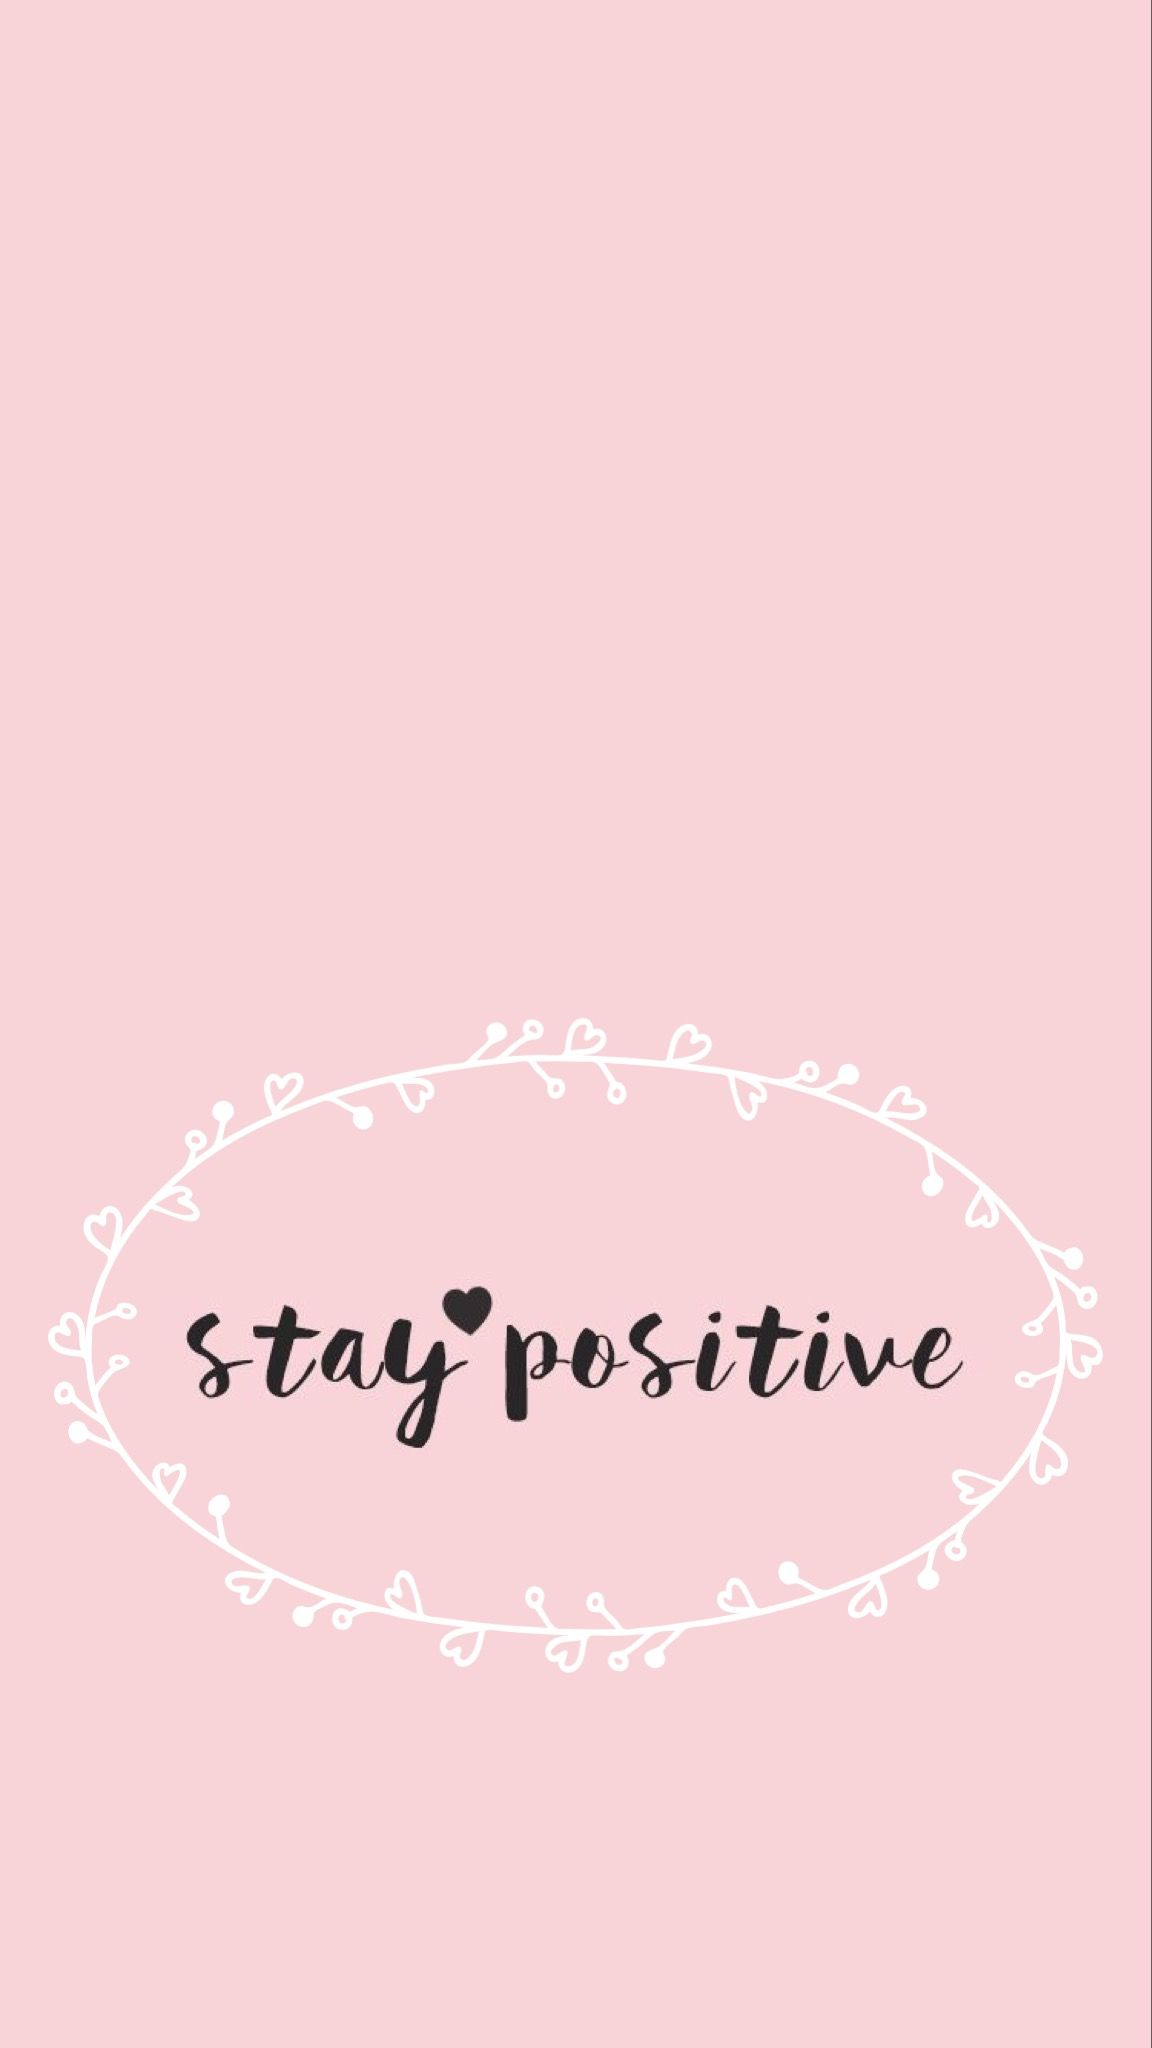 Download Positive Wallpapers Hd Backgrounds Download Itl Cat